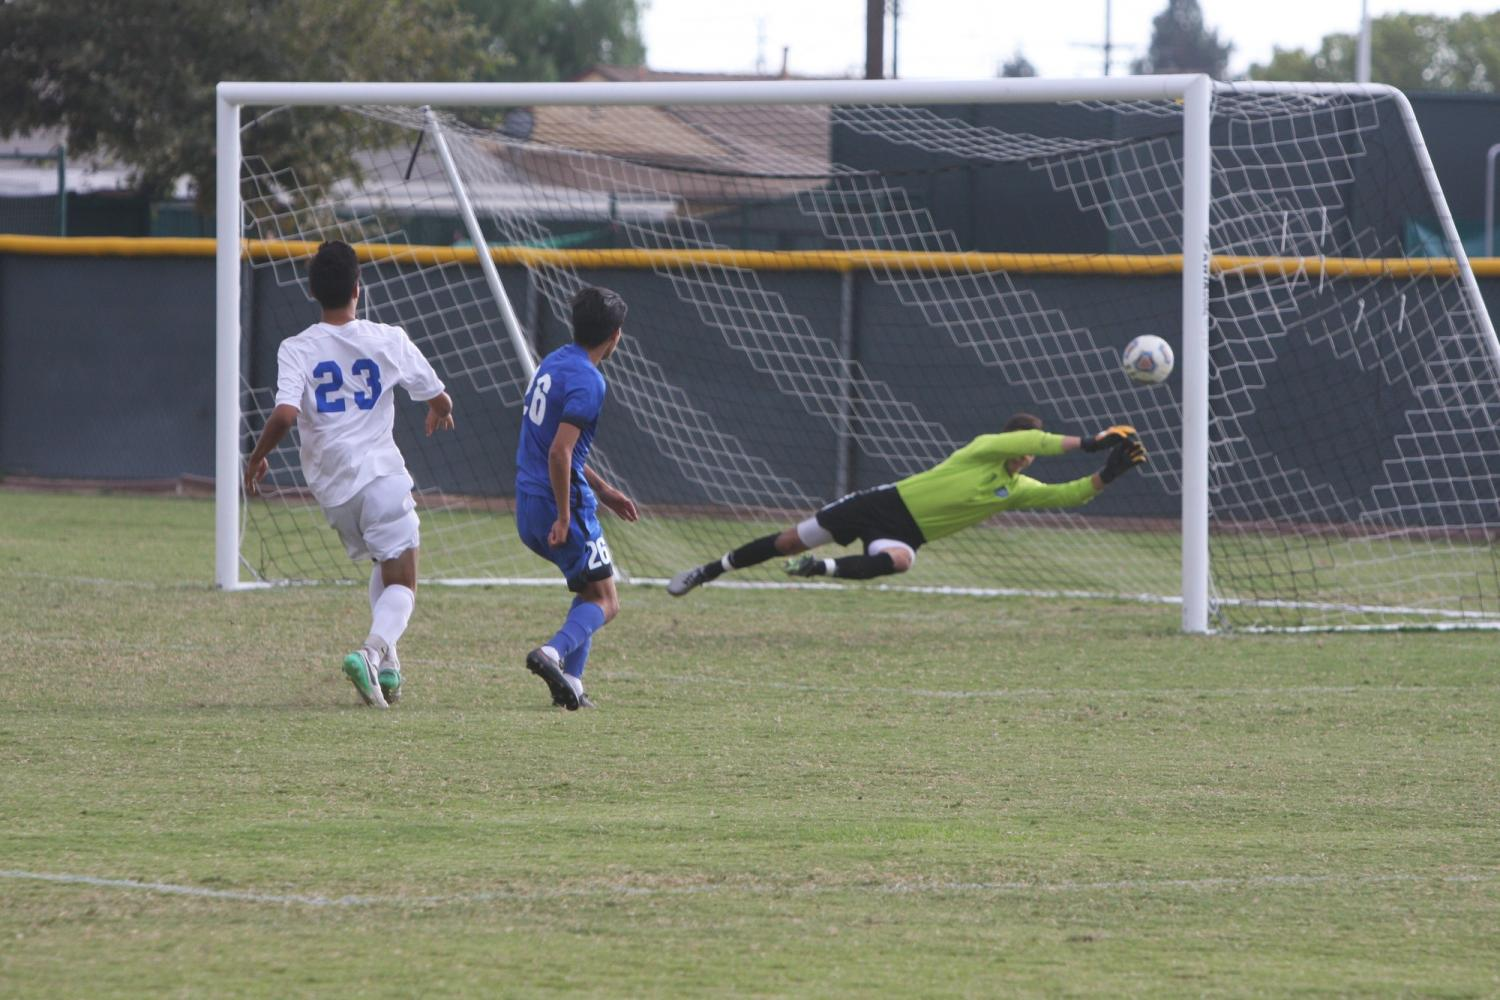 Brian Rodriguez shoots and hits the post. The Falcons look to amplify their unbeaten streak and get their seventh shutout game when they visit Taft college on Tuesday Sept. 19. Photo credit: David Jenkins